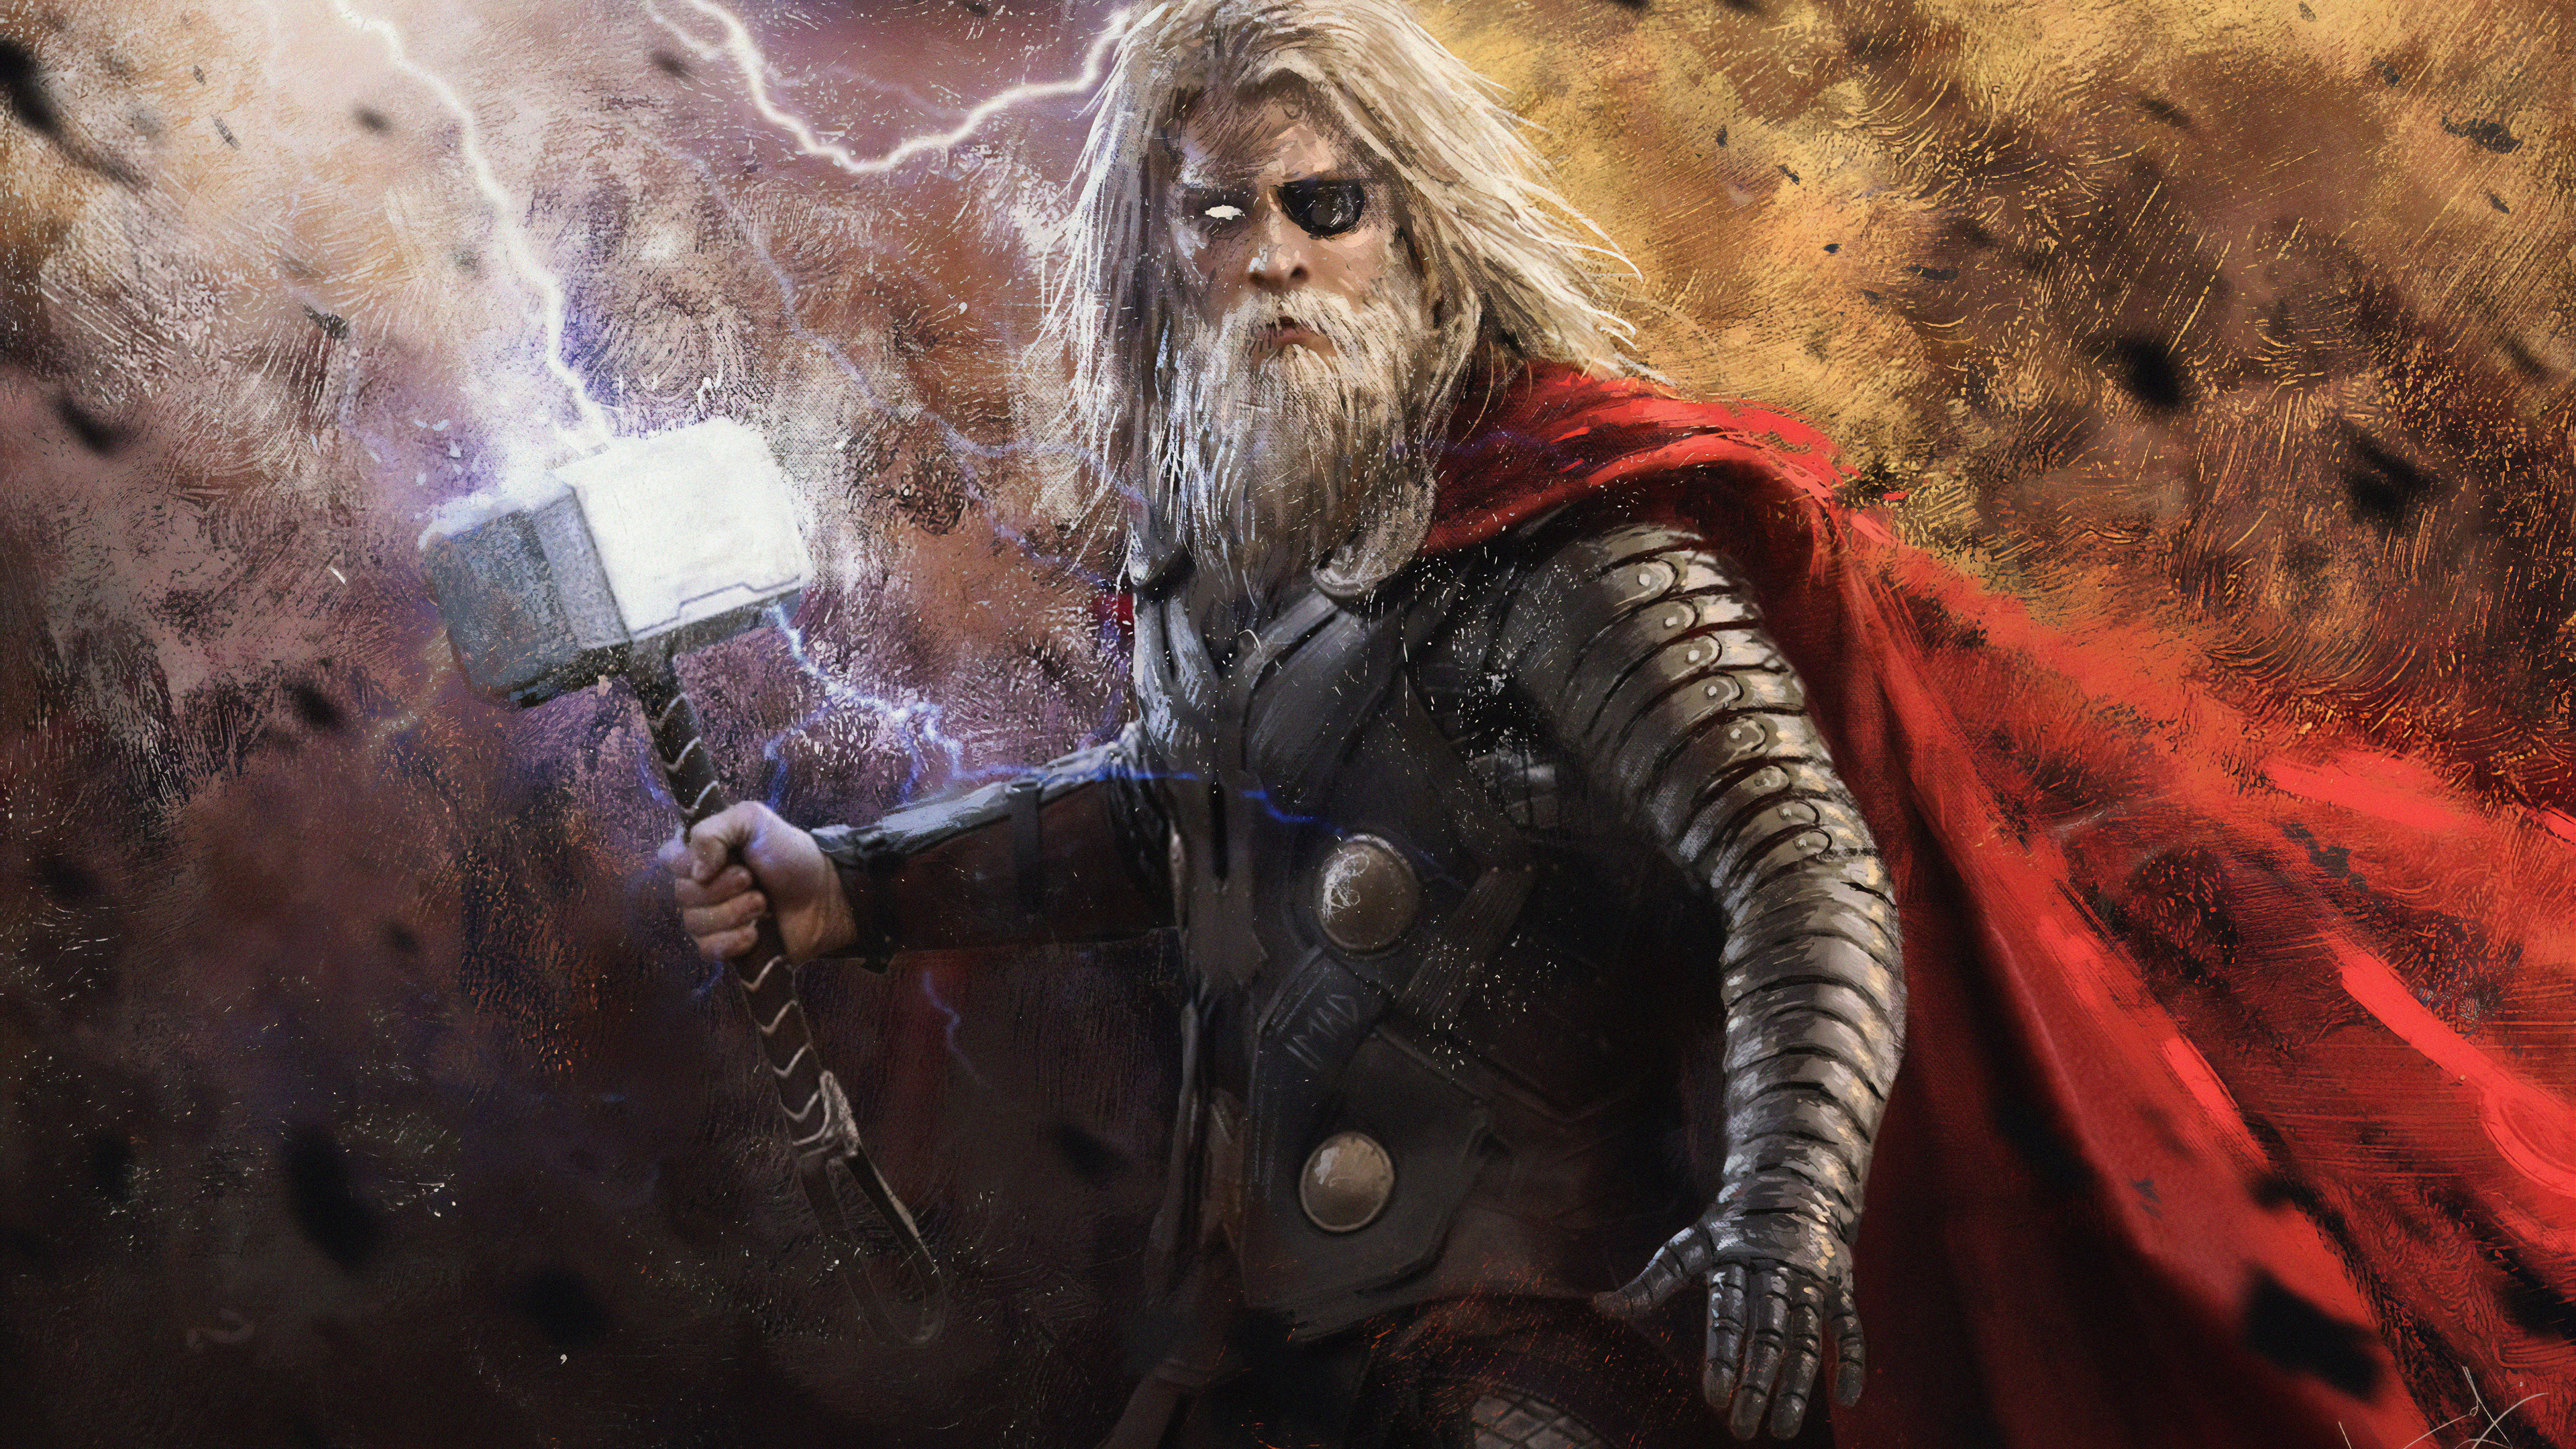 old thor 4k 1565052833 - Old Thor 4k - thor wallpapers, superheroes wallpapers, hd-wallpapers, digital art wallpapers, artwork wallpapers, 4k-wallpapers